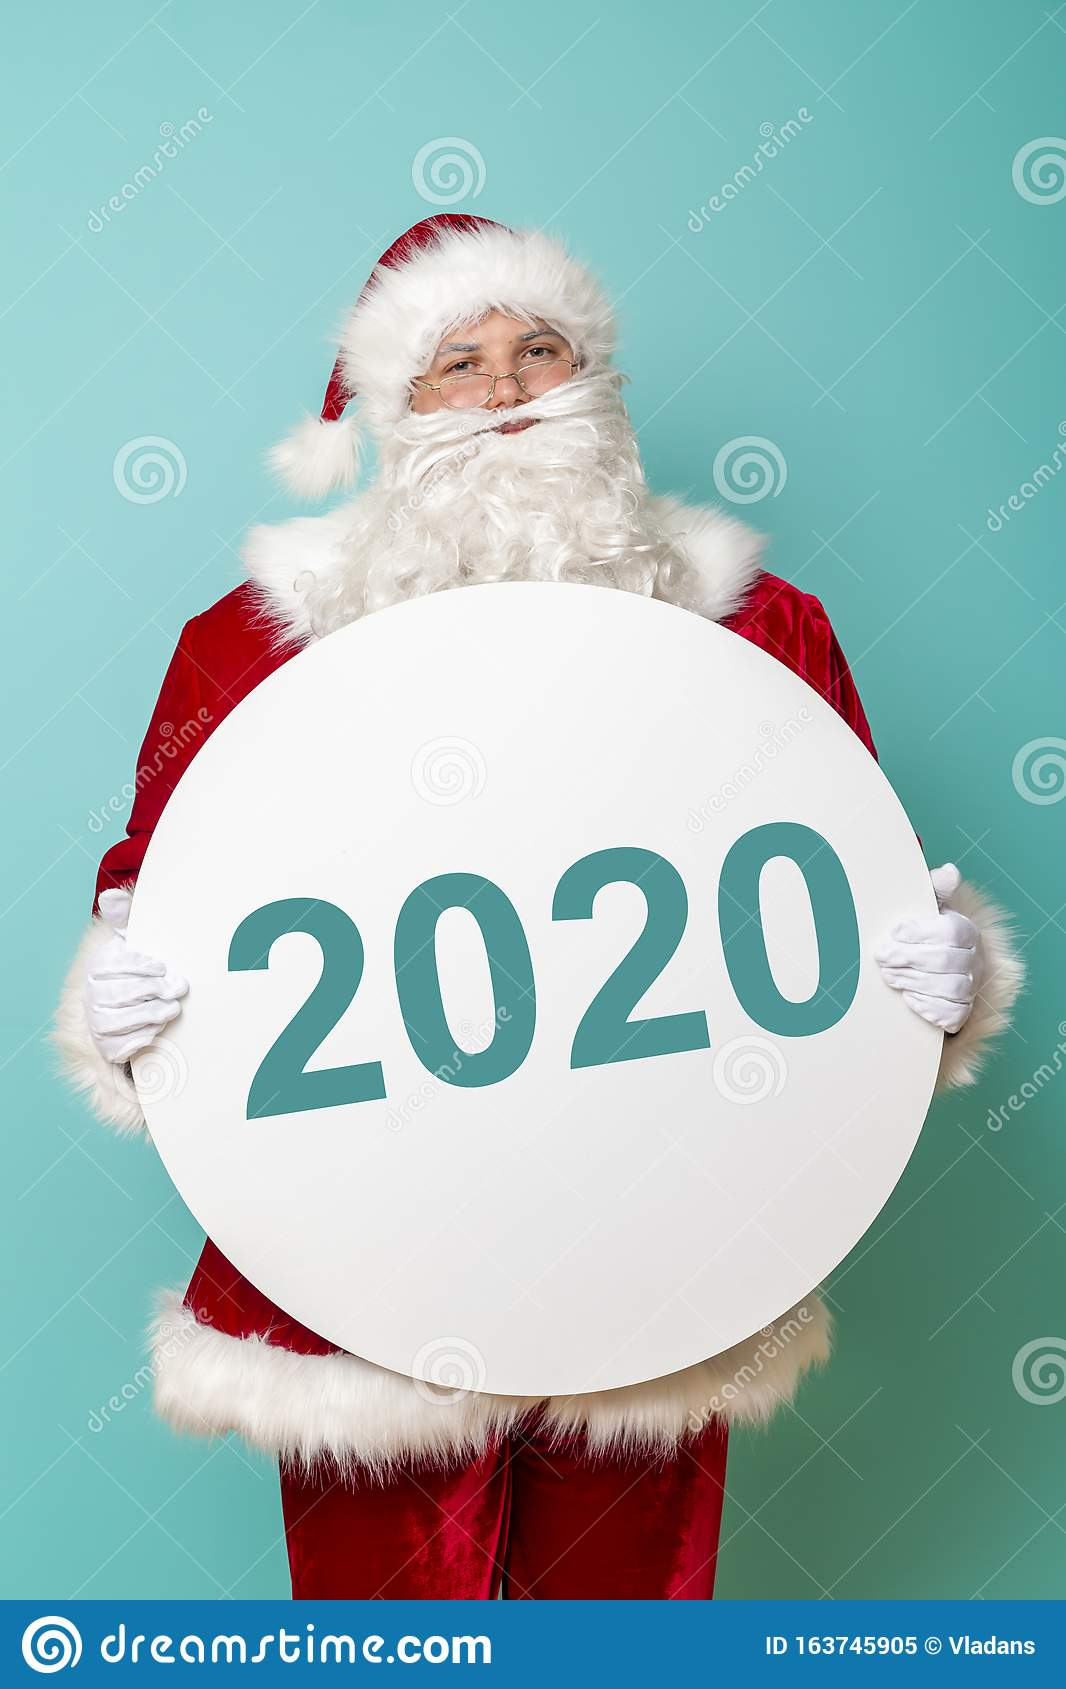 2020 Christmas Sales Numbers Santa Holding Cardboard Circle With Numbers 2020 Stock Image